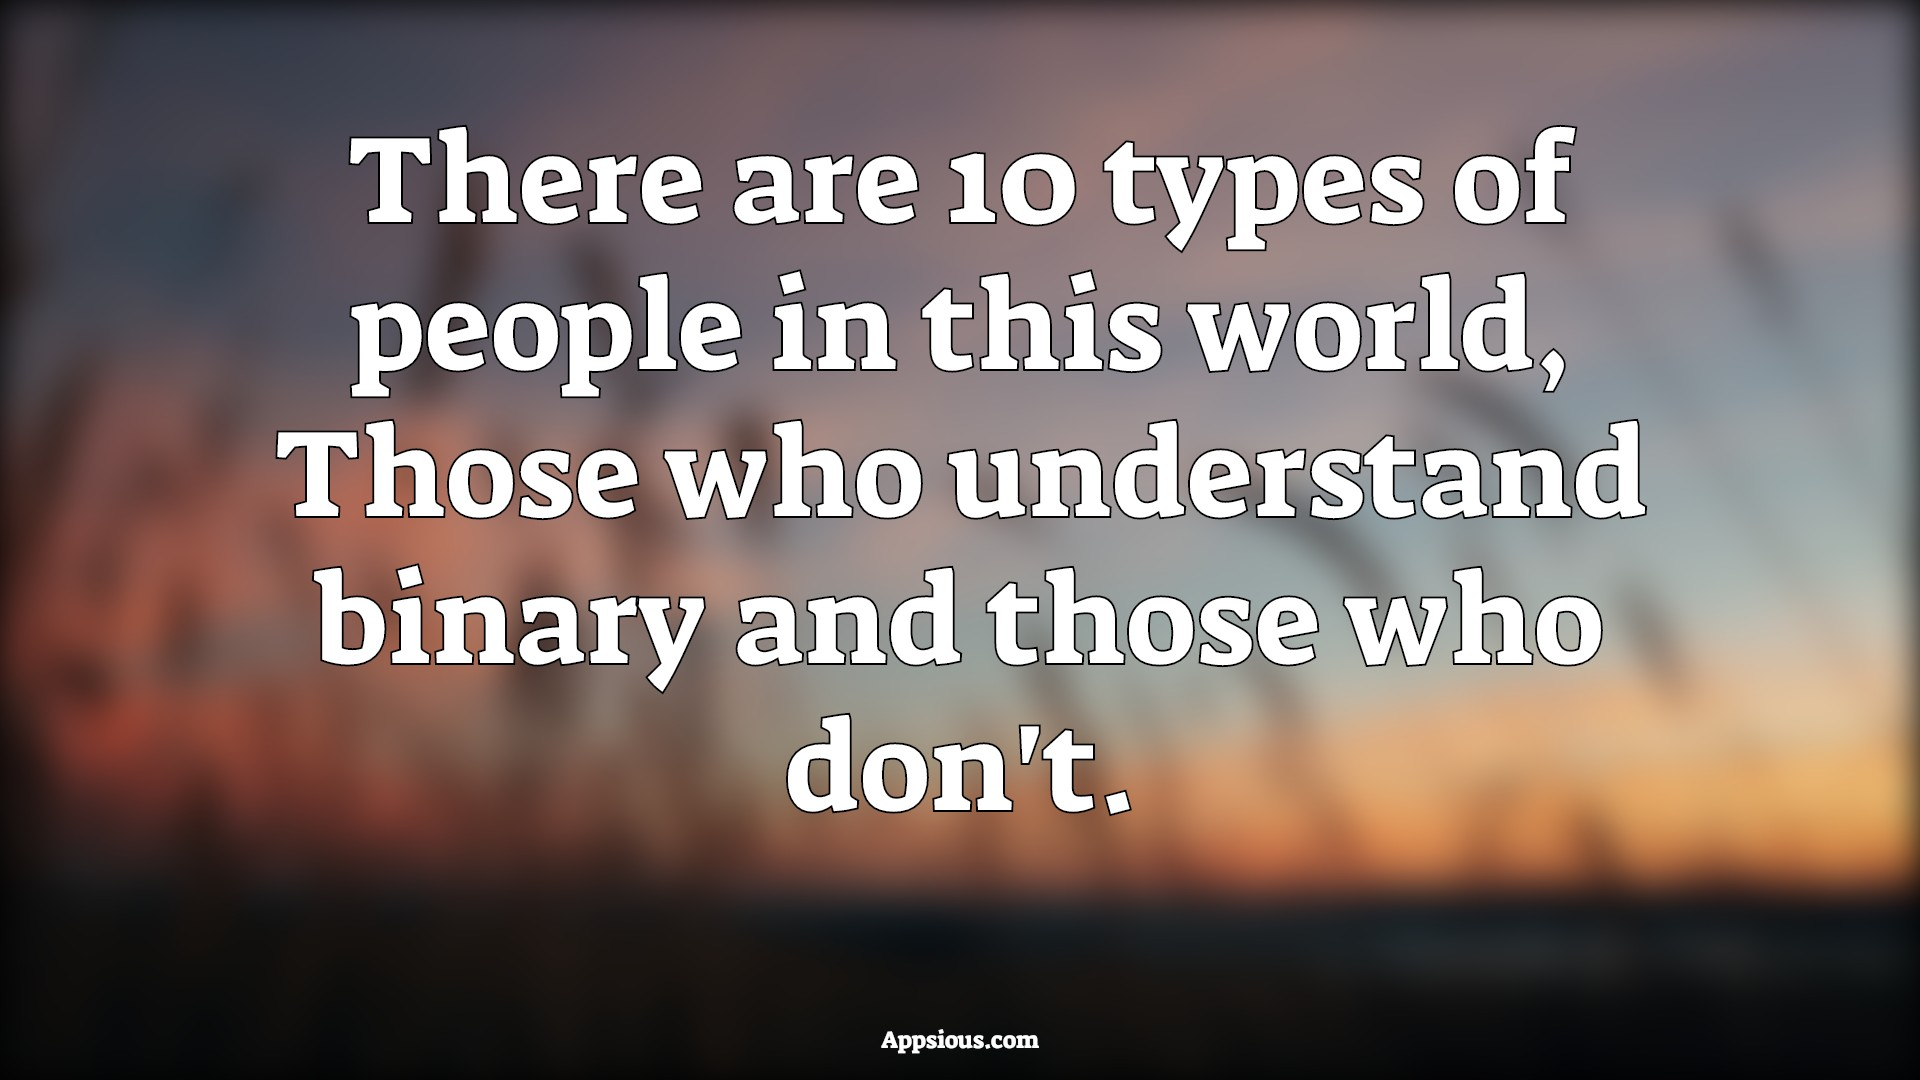 There are 10 types of people in this world, Those who understand binary and those who don't.